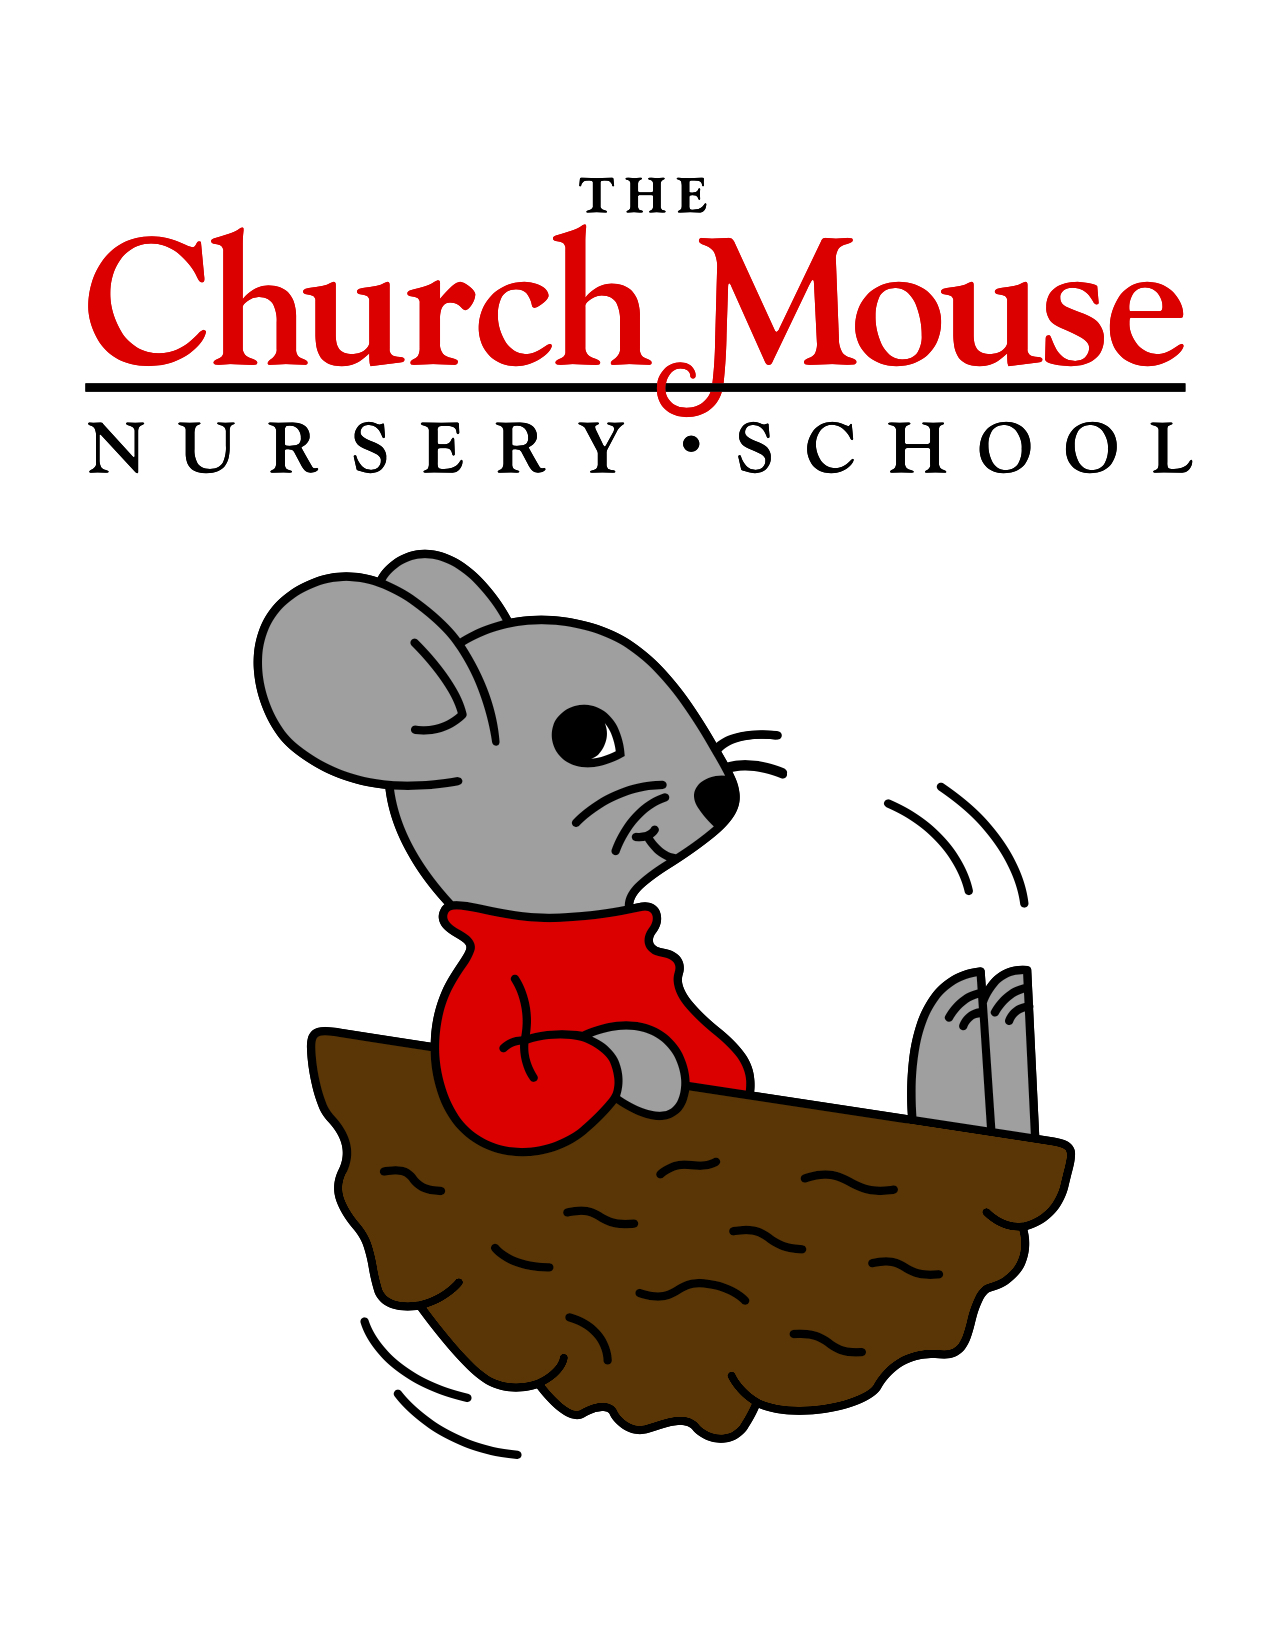 ChurchMouse logo